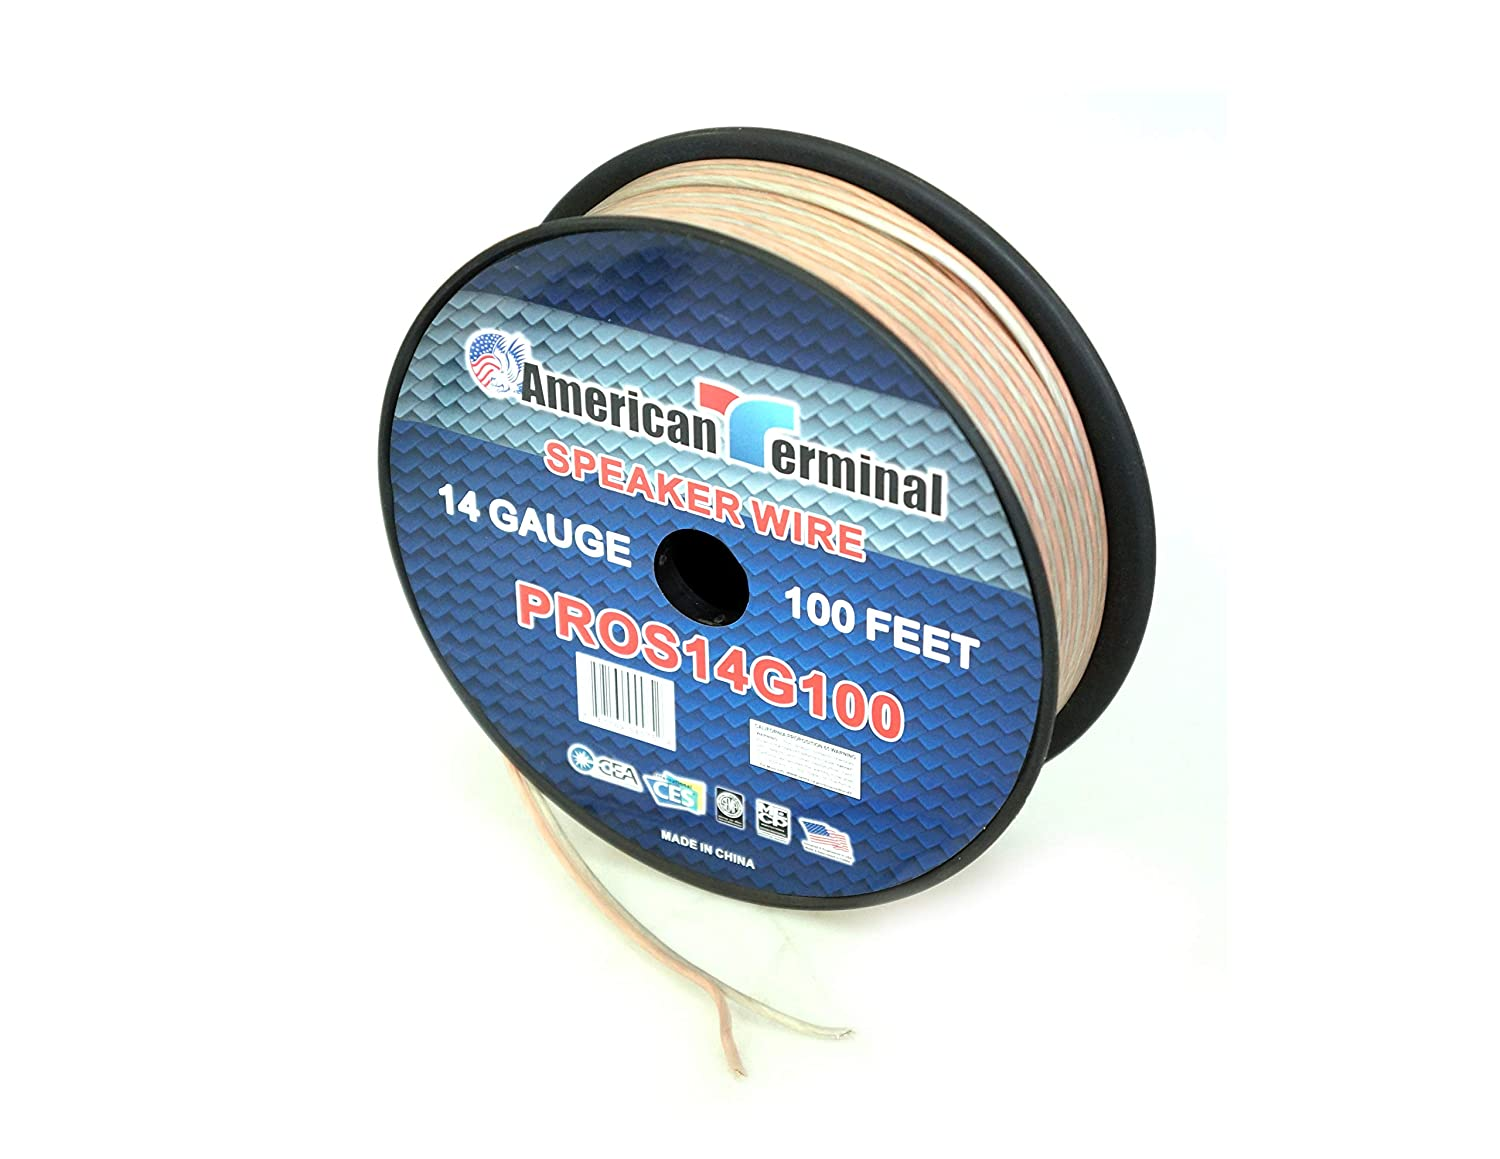 of 14 Gauge Pro Series Clear Speaker Wire American Terminal PROS14G100 100 ft